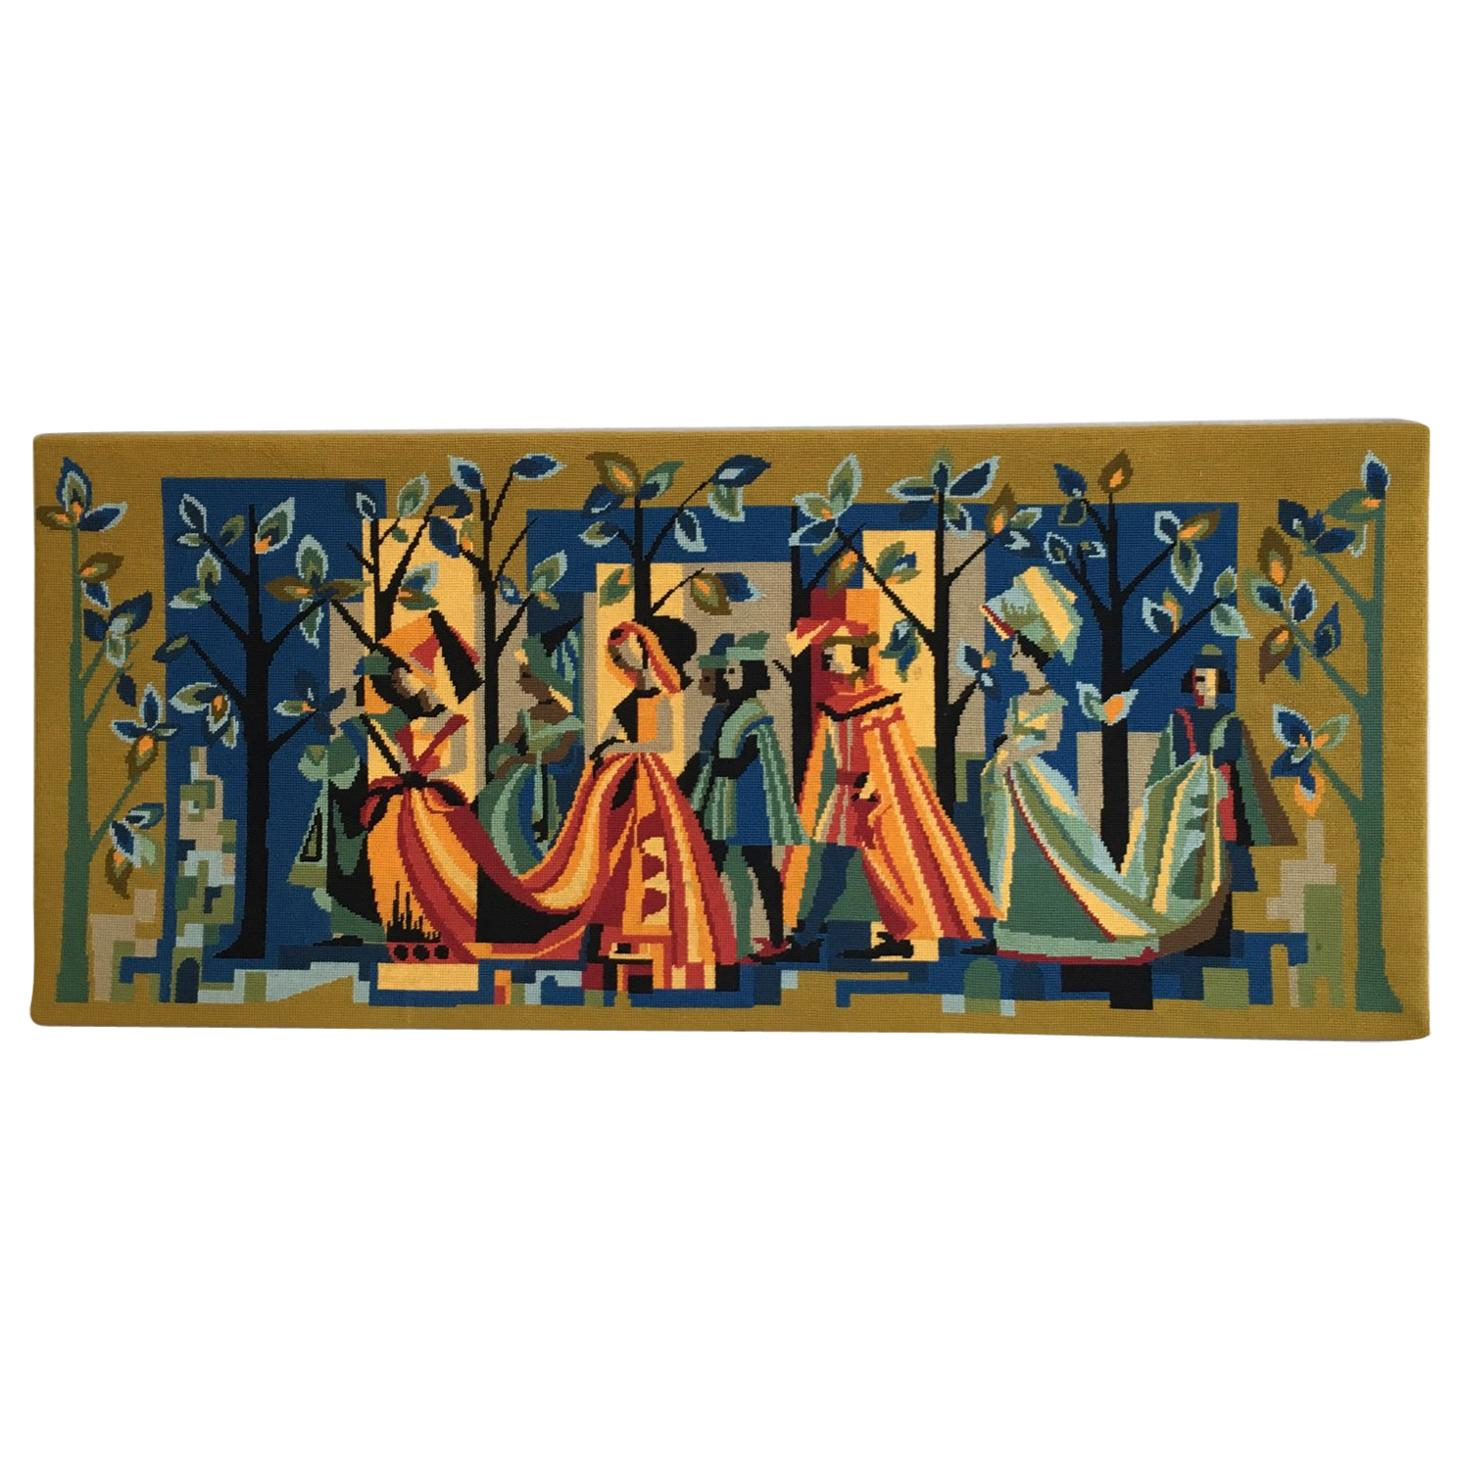 French Vintage Petit Point Colourful Wall Tapestry or Embroidery, circa 1950s